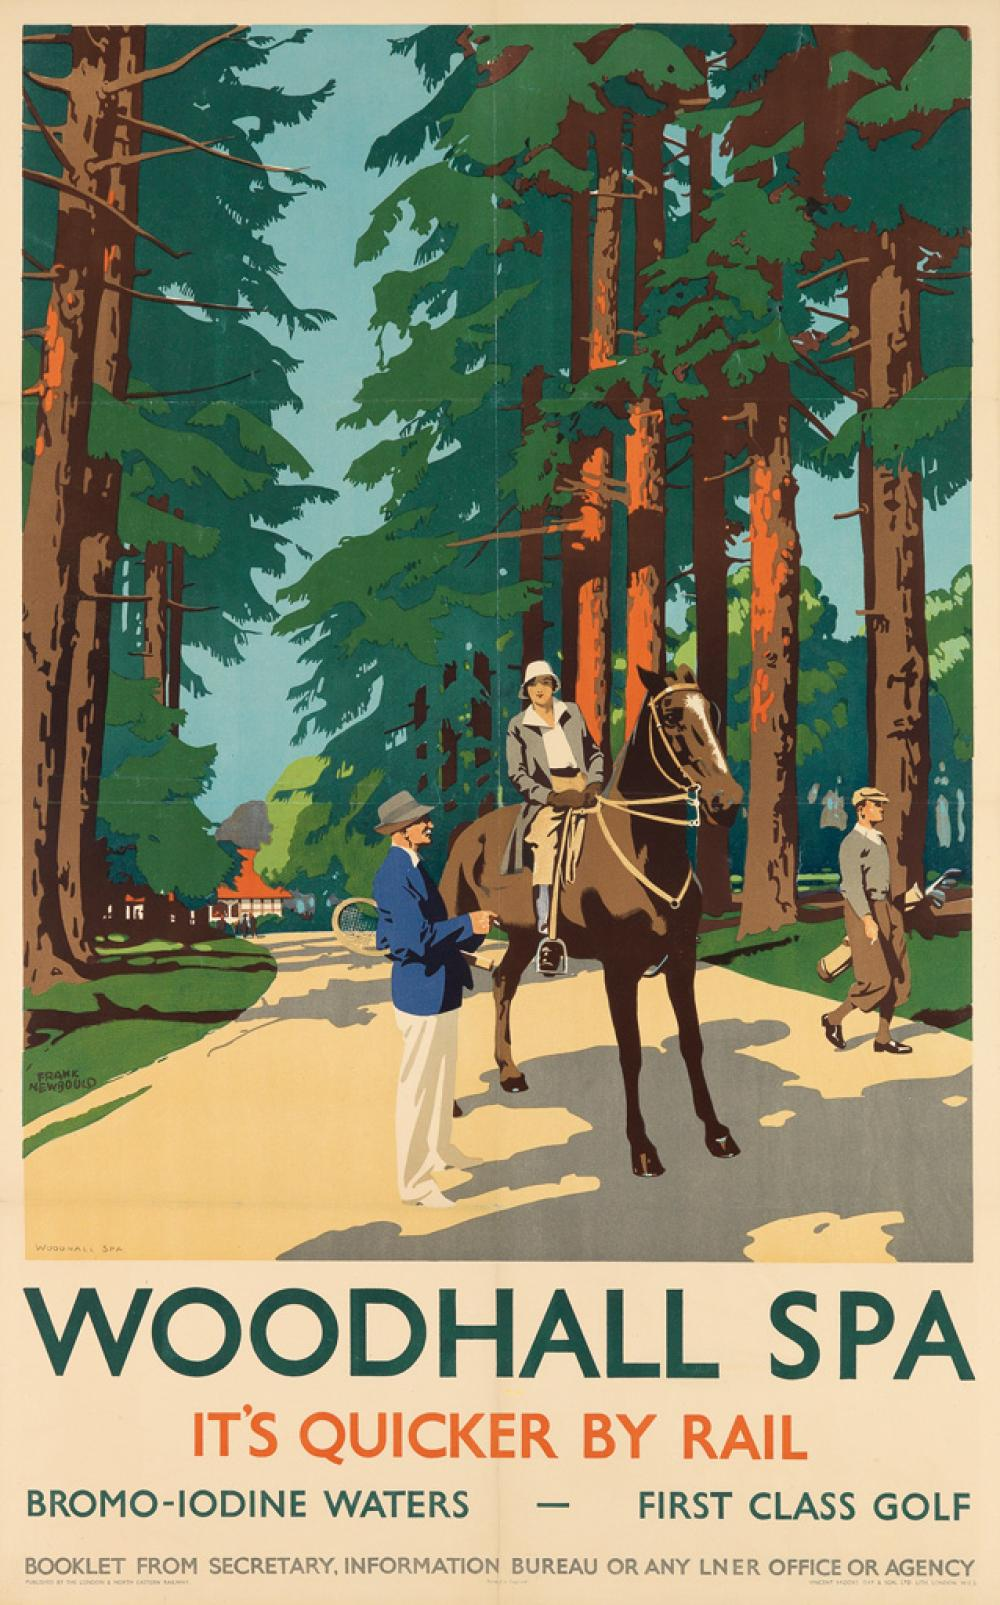 FRANK NEWBOULD (1887-1950). WOODHALL SPA. 40x25 inches, 101x63 cm. Vincent Brooks, Day & Son, London.